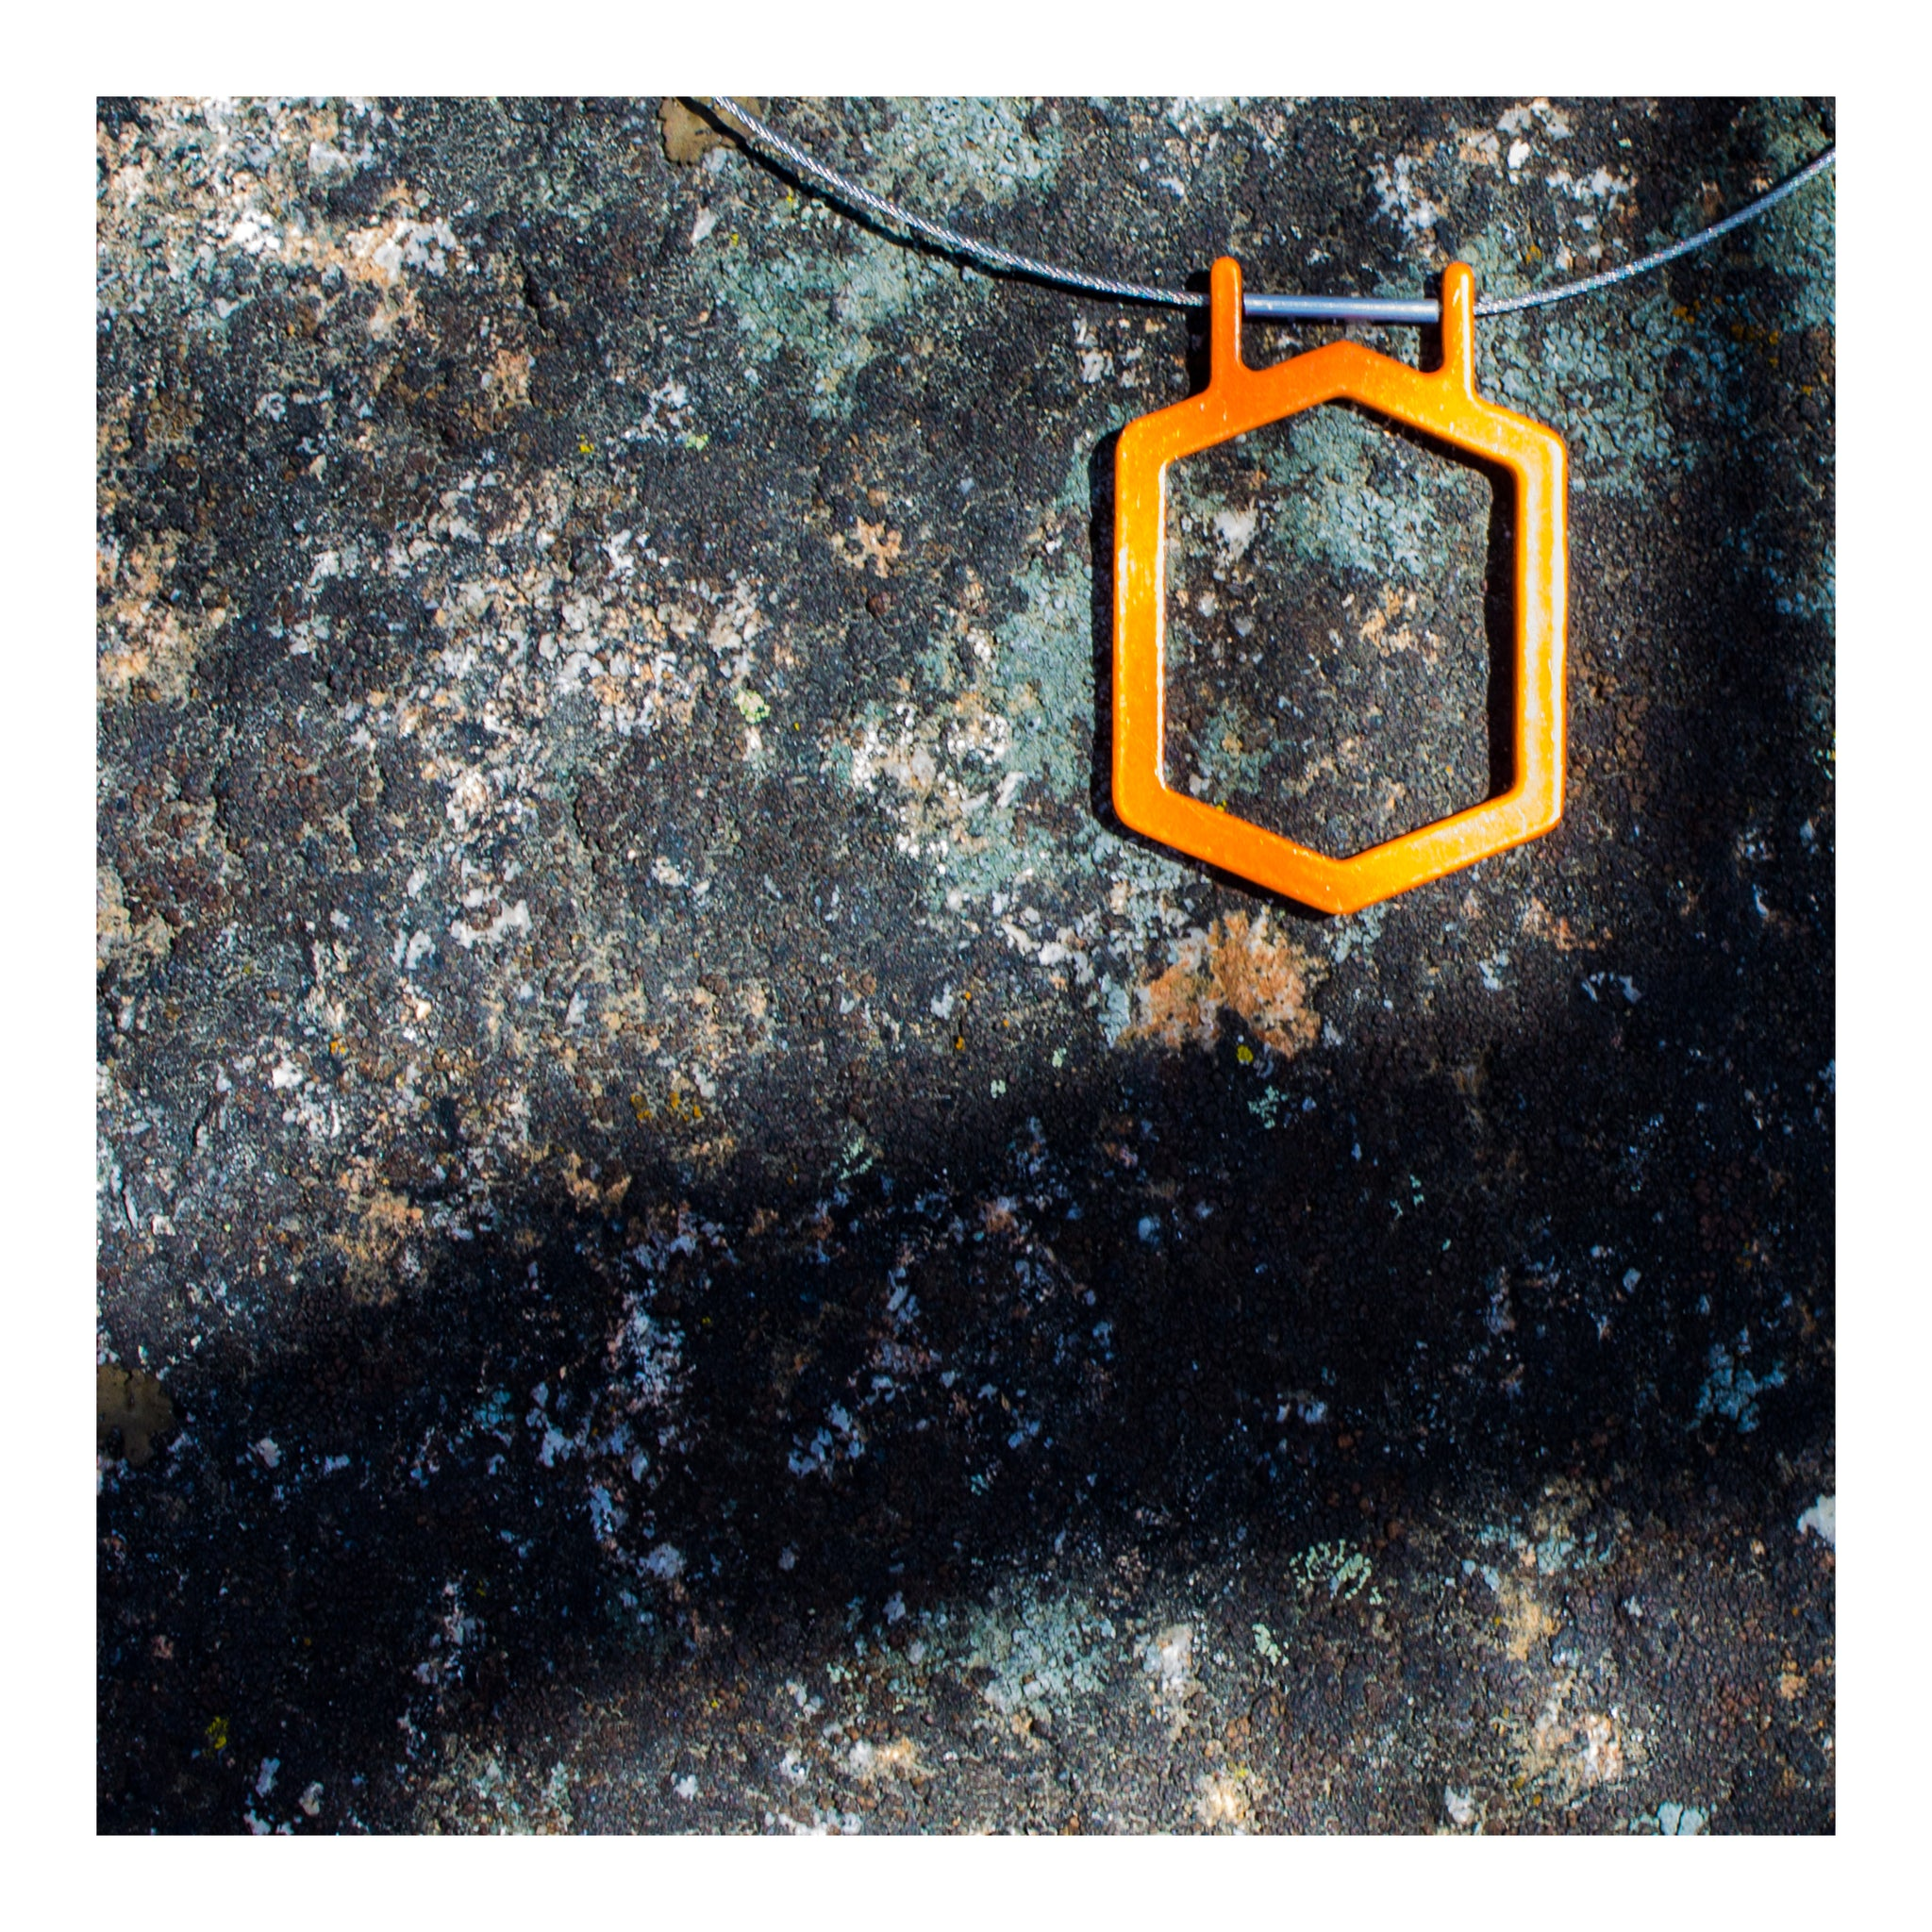 Vibrant_Orange - WITHIN x COMMON GROUND Jewelry Lifestyle